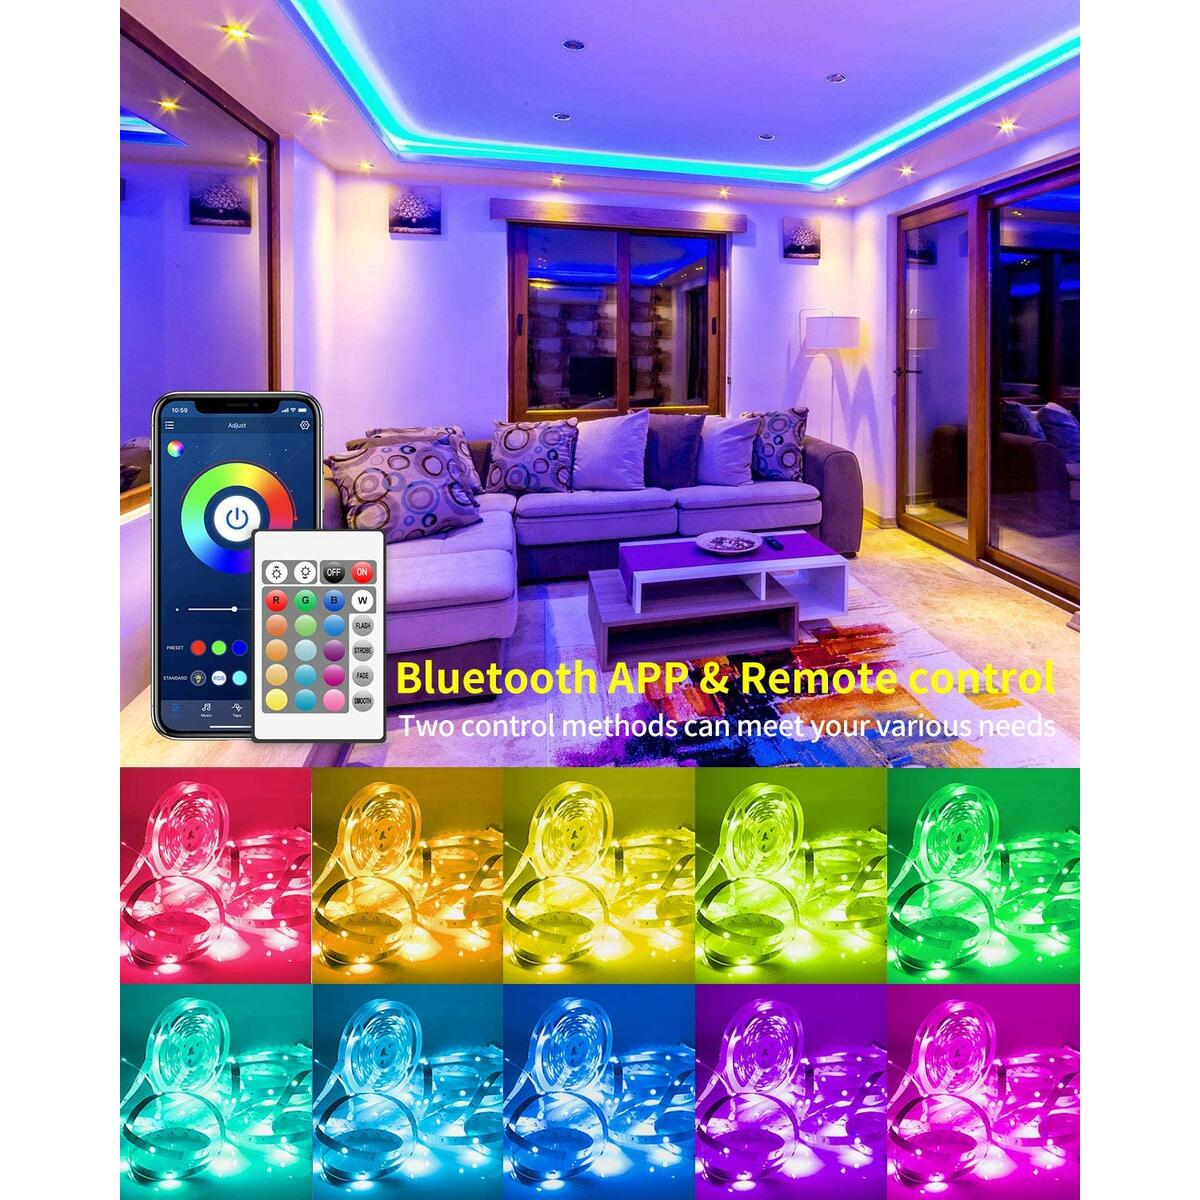 LED Strip Lights 50ft, GUPUP Smart LED Lights for Bedroom 5050 RGB Color Changing Light Strip Sync to Music LED Tape Lights Controlled by Bluetooth APP and 24-Key Remote